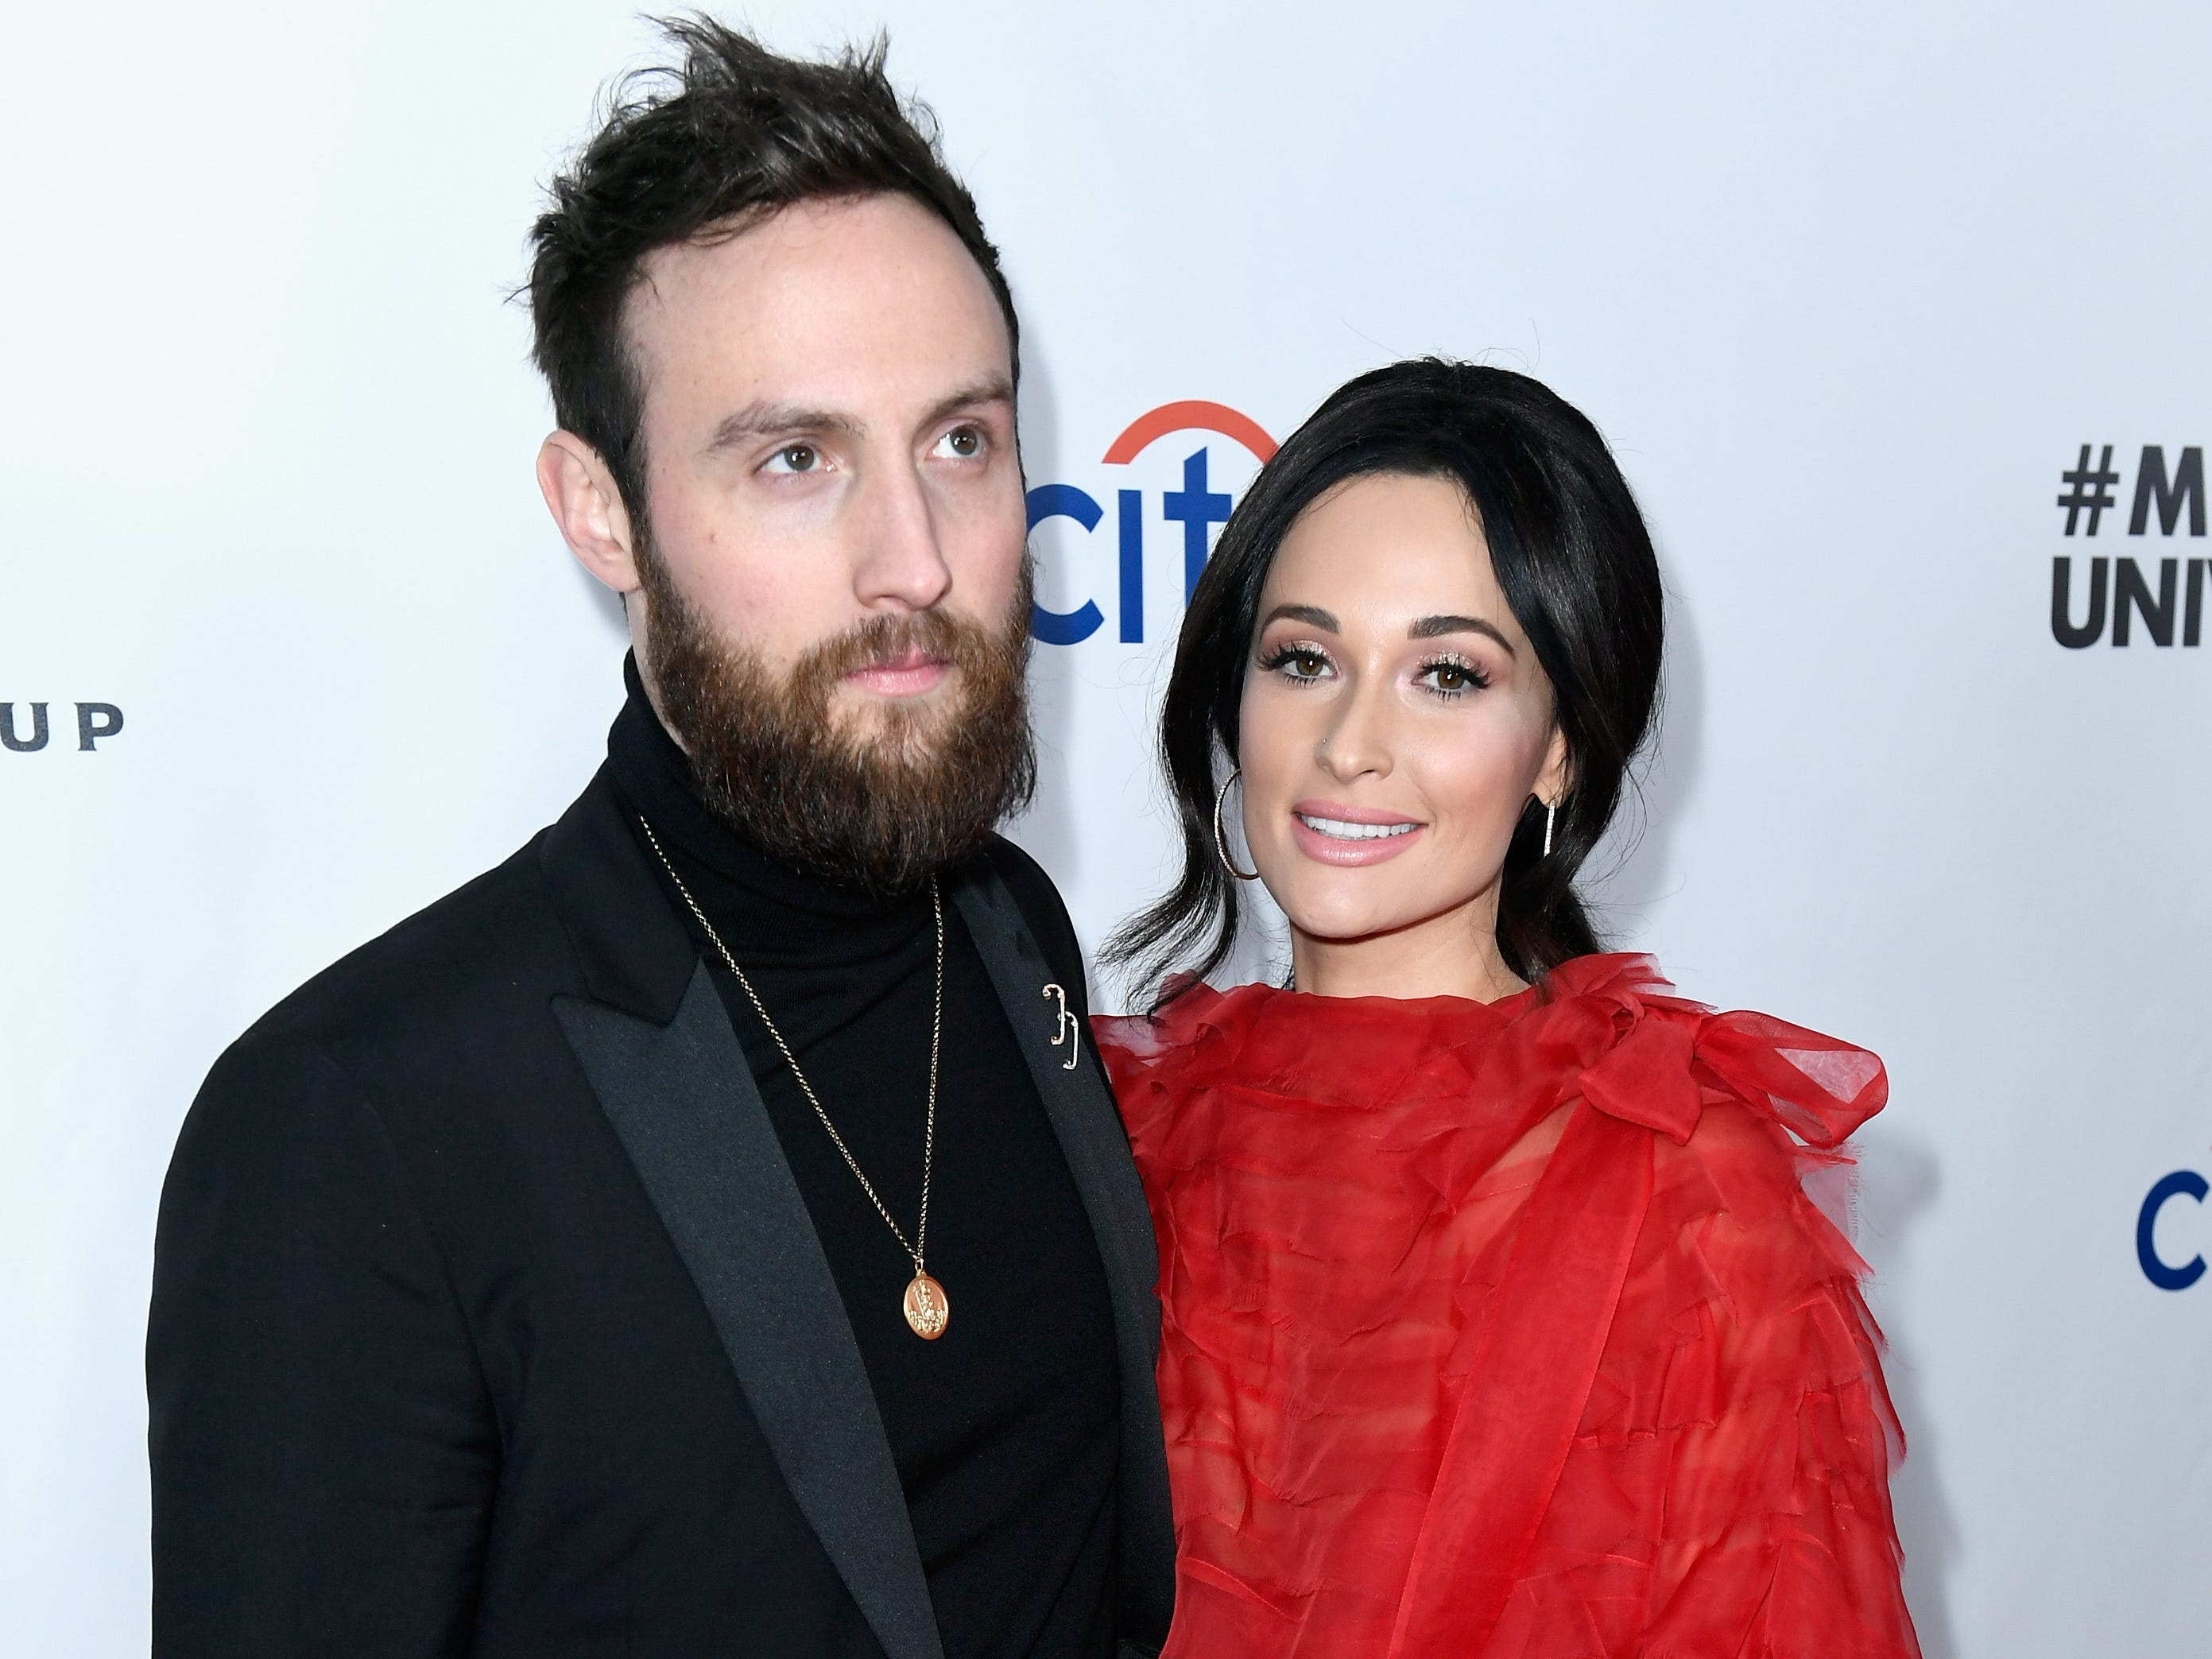 Ruston Kelly and Kacey Musgraves at Universal Music Group's Grammy 2019 after party on February 10, 2019 in Los Angeles.